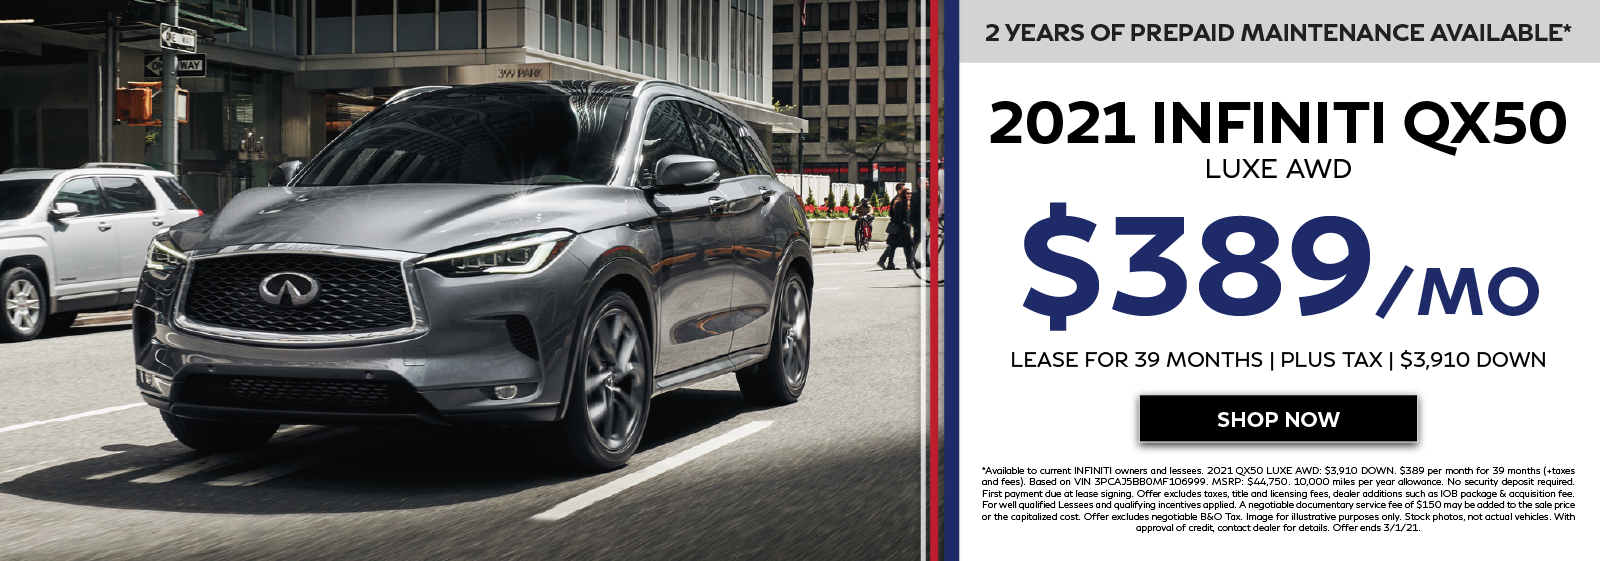 2021 INFINITI QX50 Offers. Click to shop now.